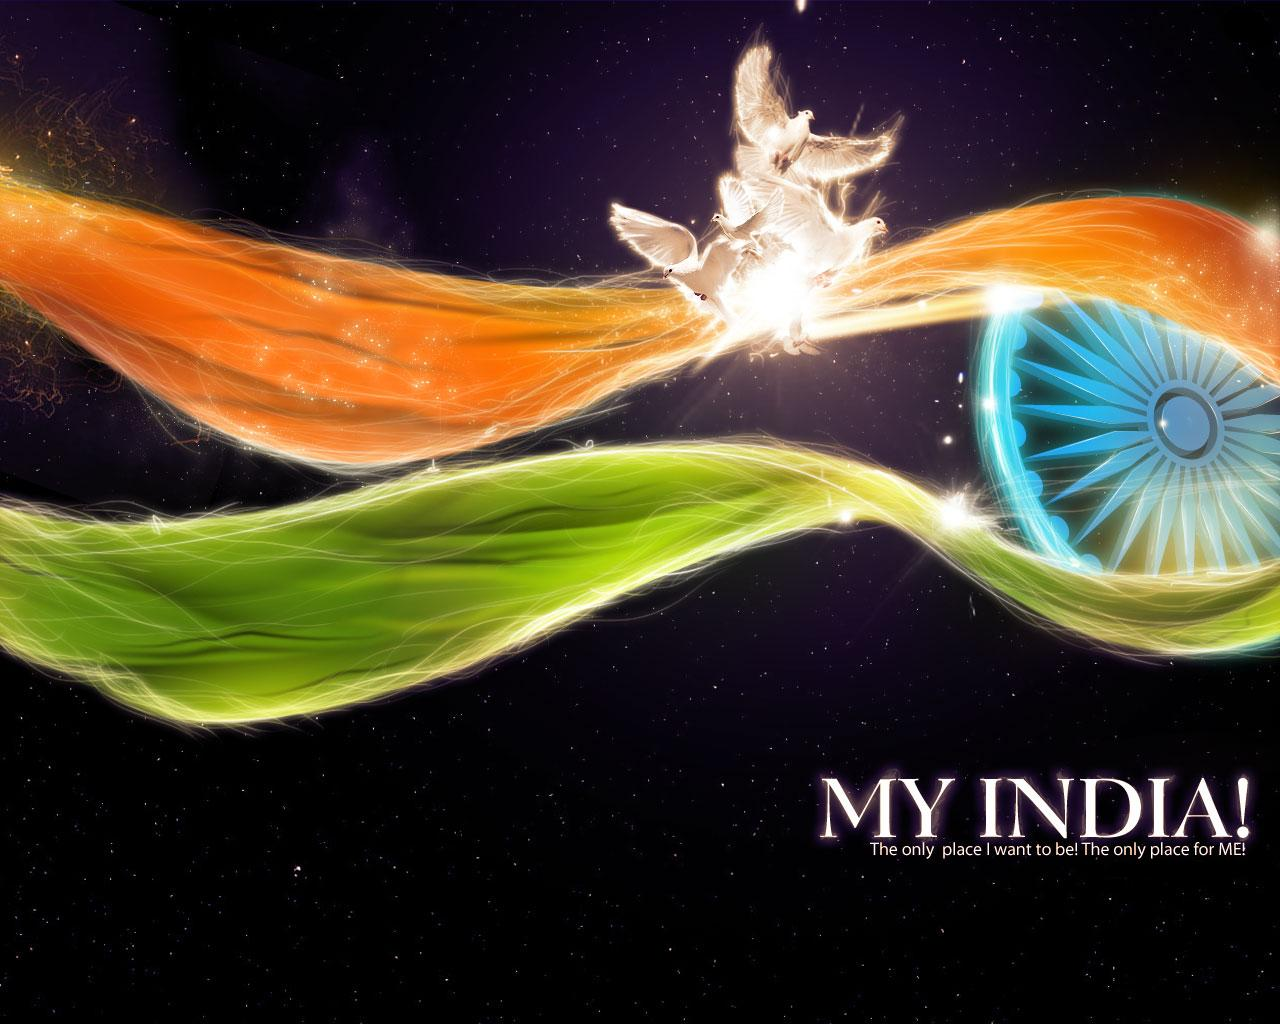 http://1.bp.blogspot.com/-7dZpymp_EAE/UP_RHycw2JI/AAAAAAAAGto/kQIt5Z4cVjs/s1600/republic-day-of-india-hd-wallpaper.jpg